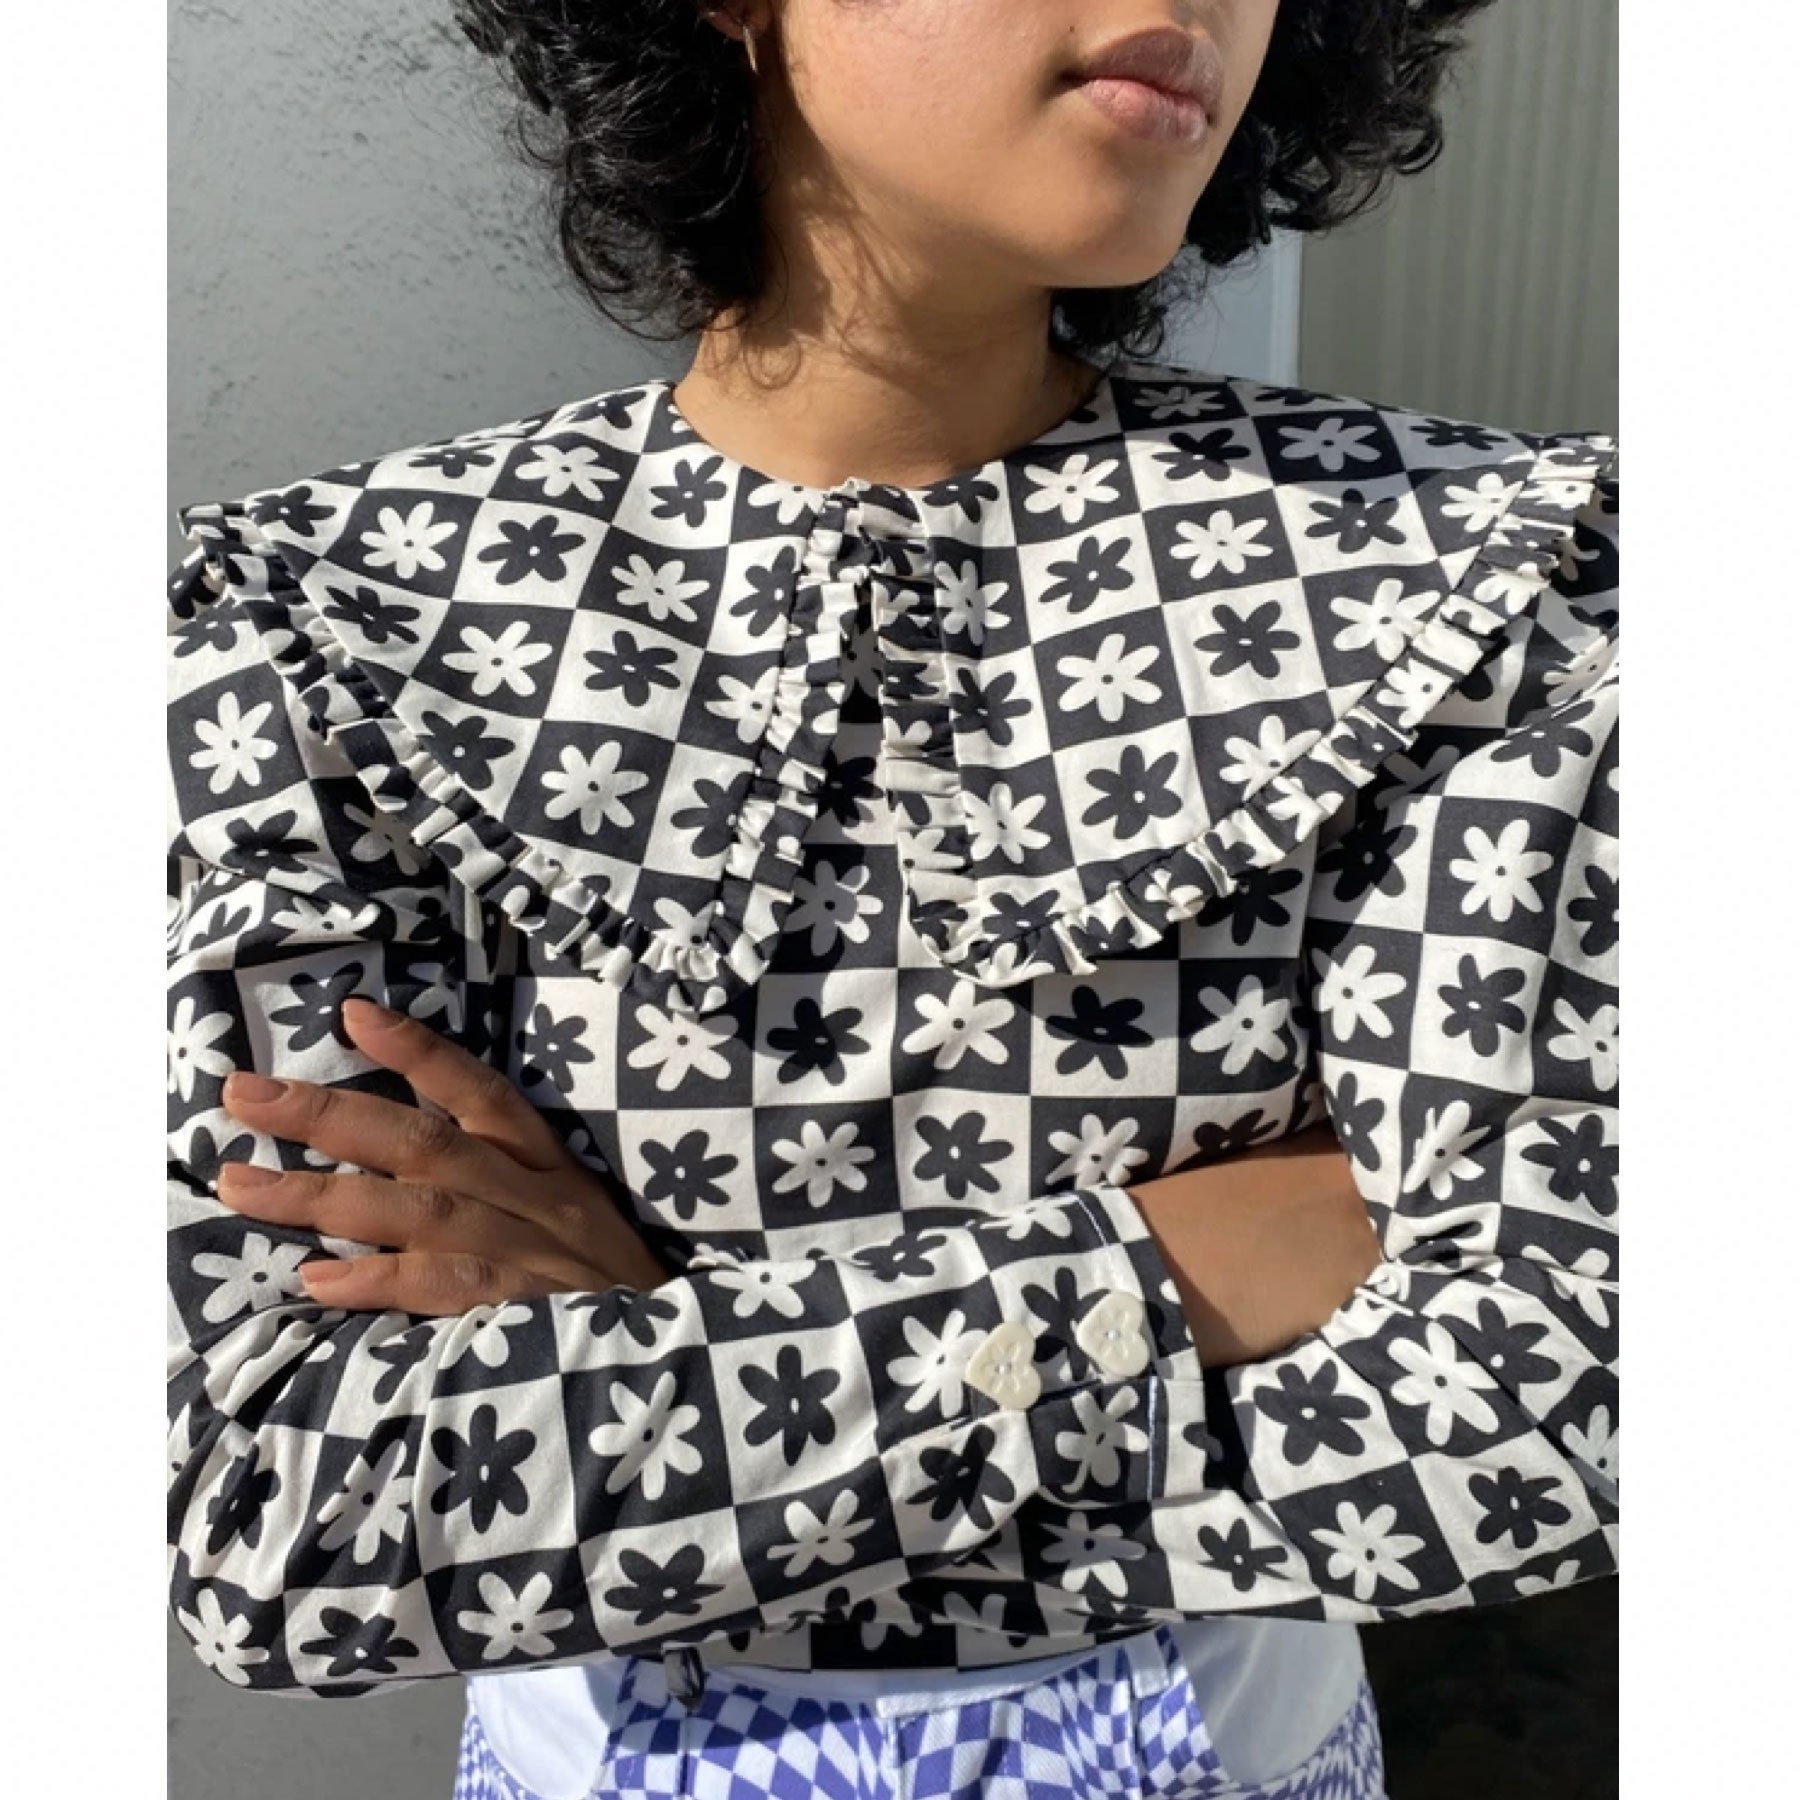 model wearing black and white floral top with large collar